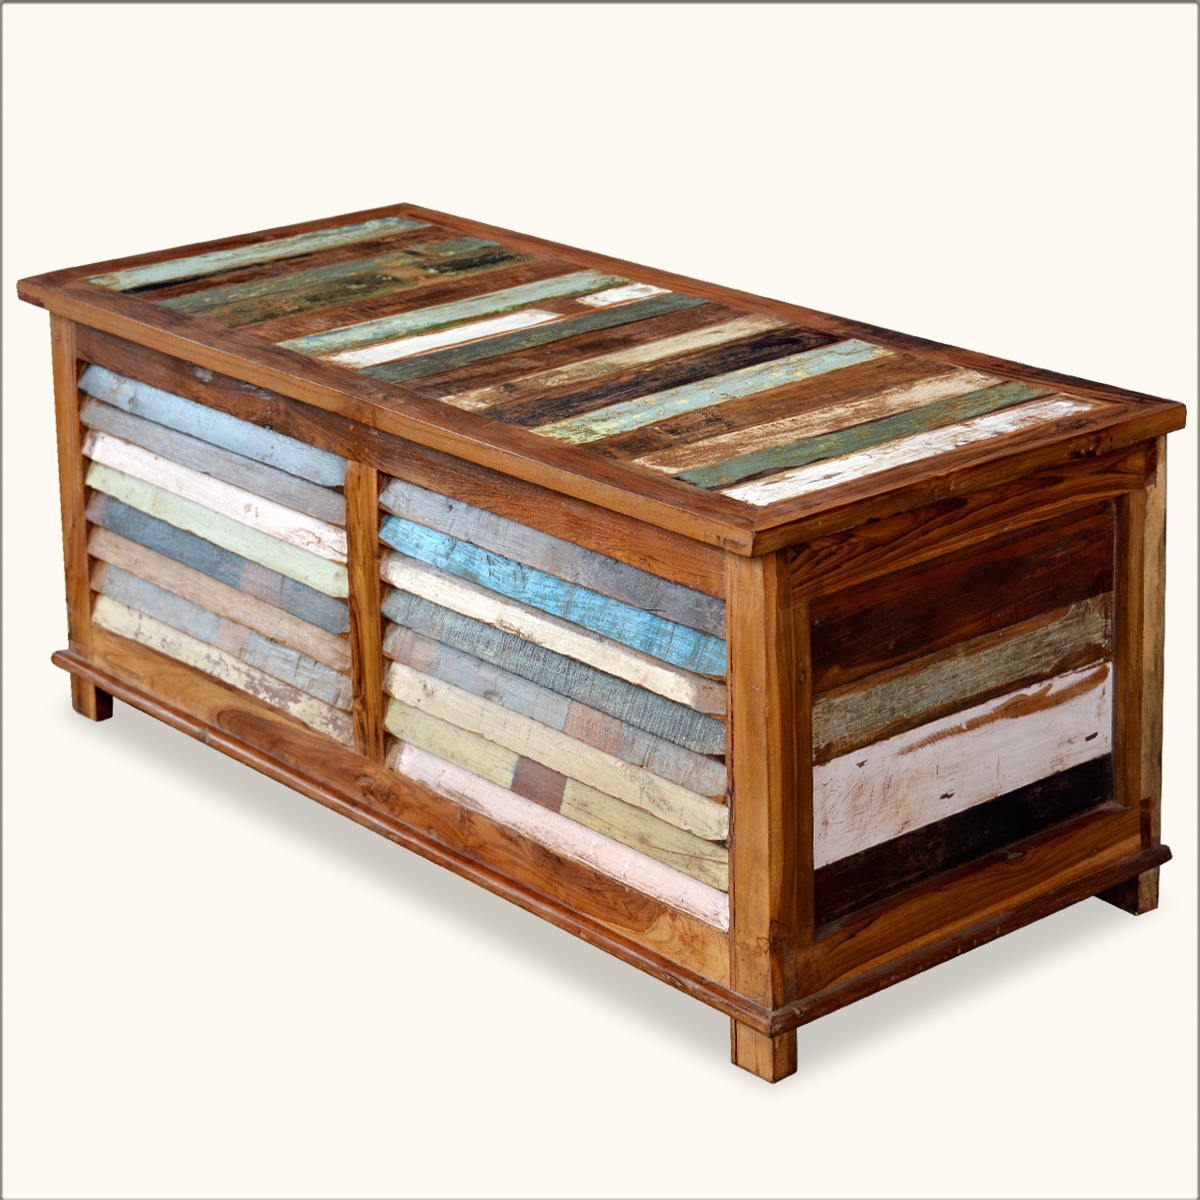 Reclaimed Storage Trunk Coffee Table Rustic Storage Box Multi Color Wooden Chest Ebay